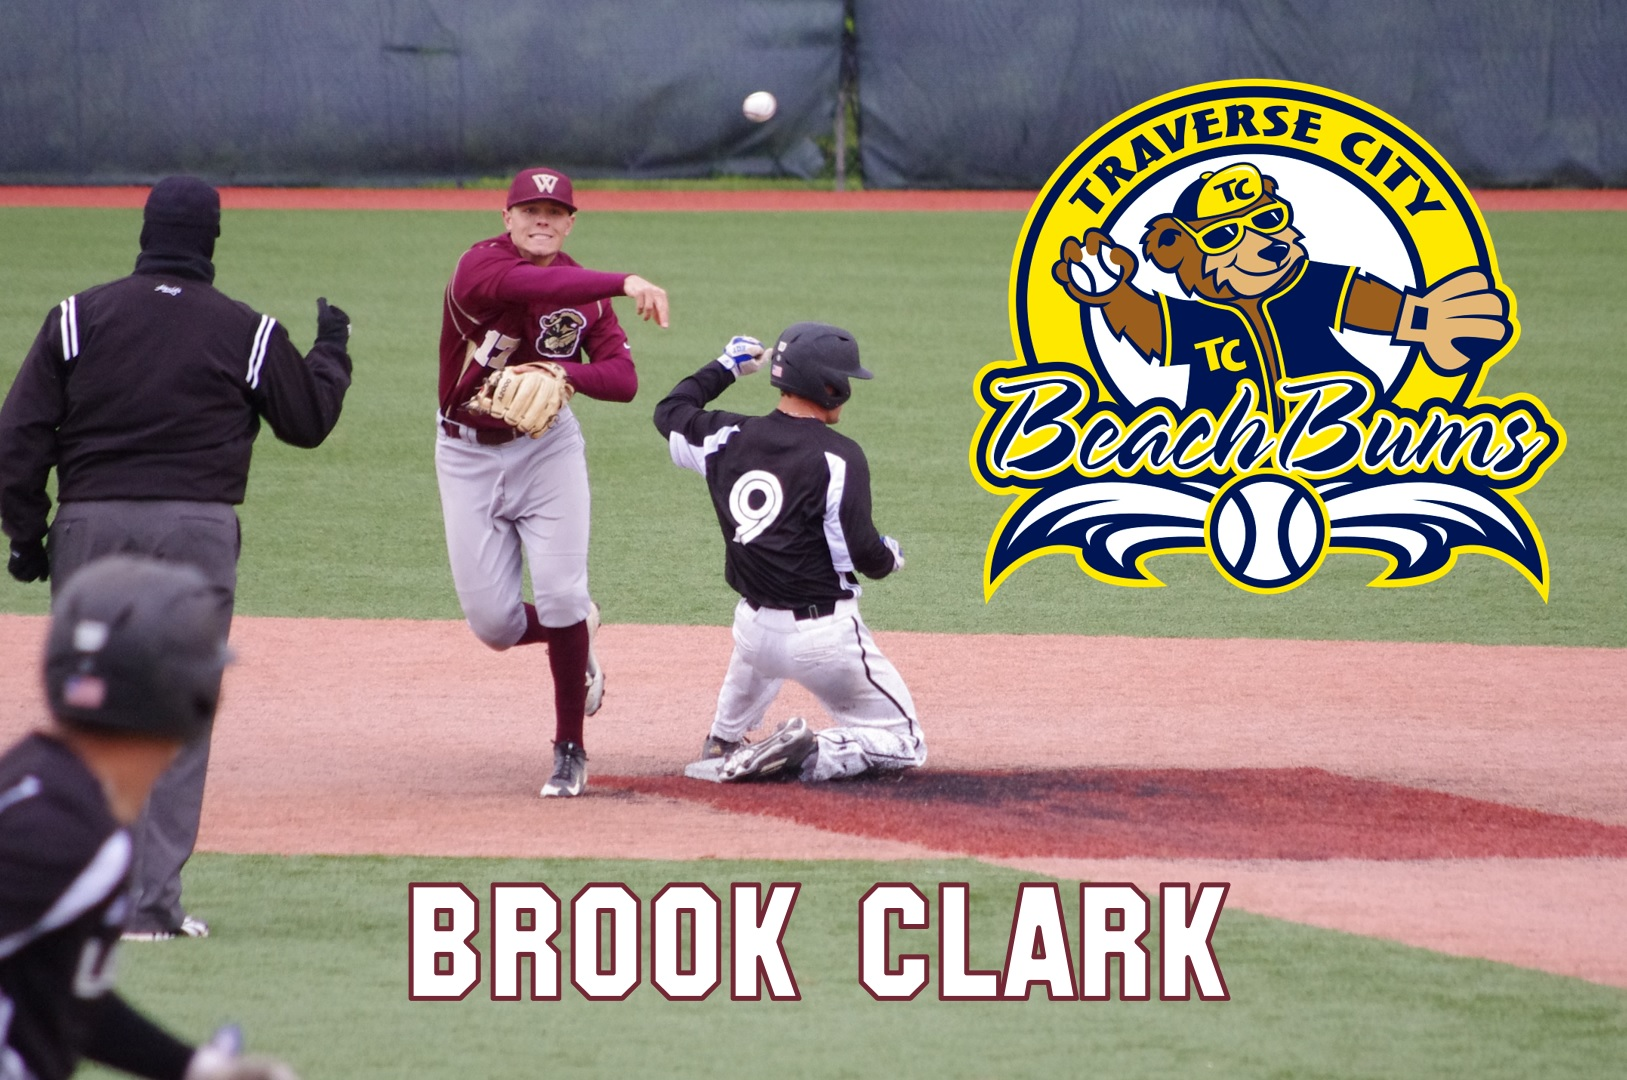 Former Cav Brook Clark Drafted By Traverse City